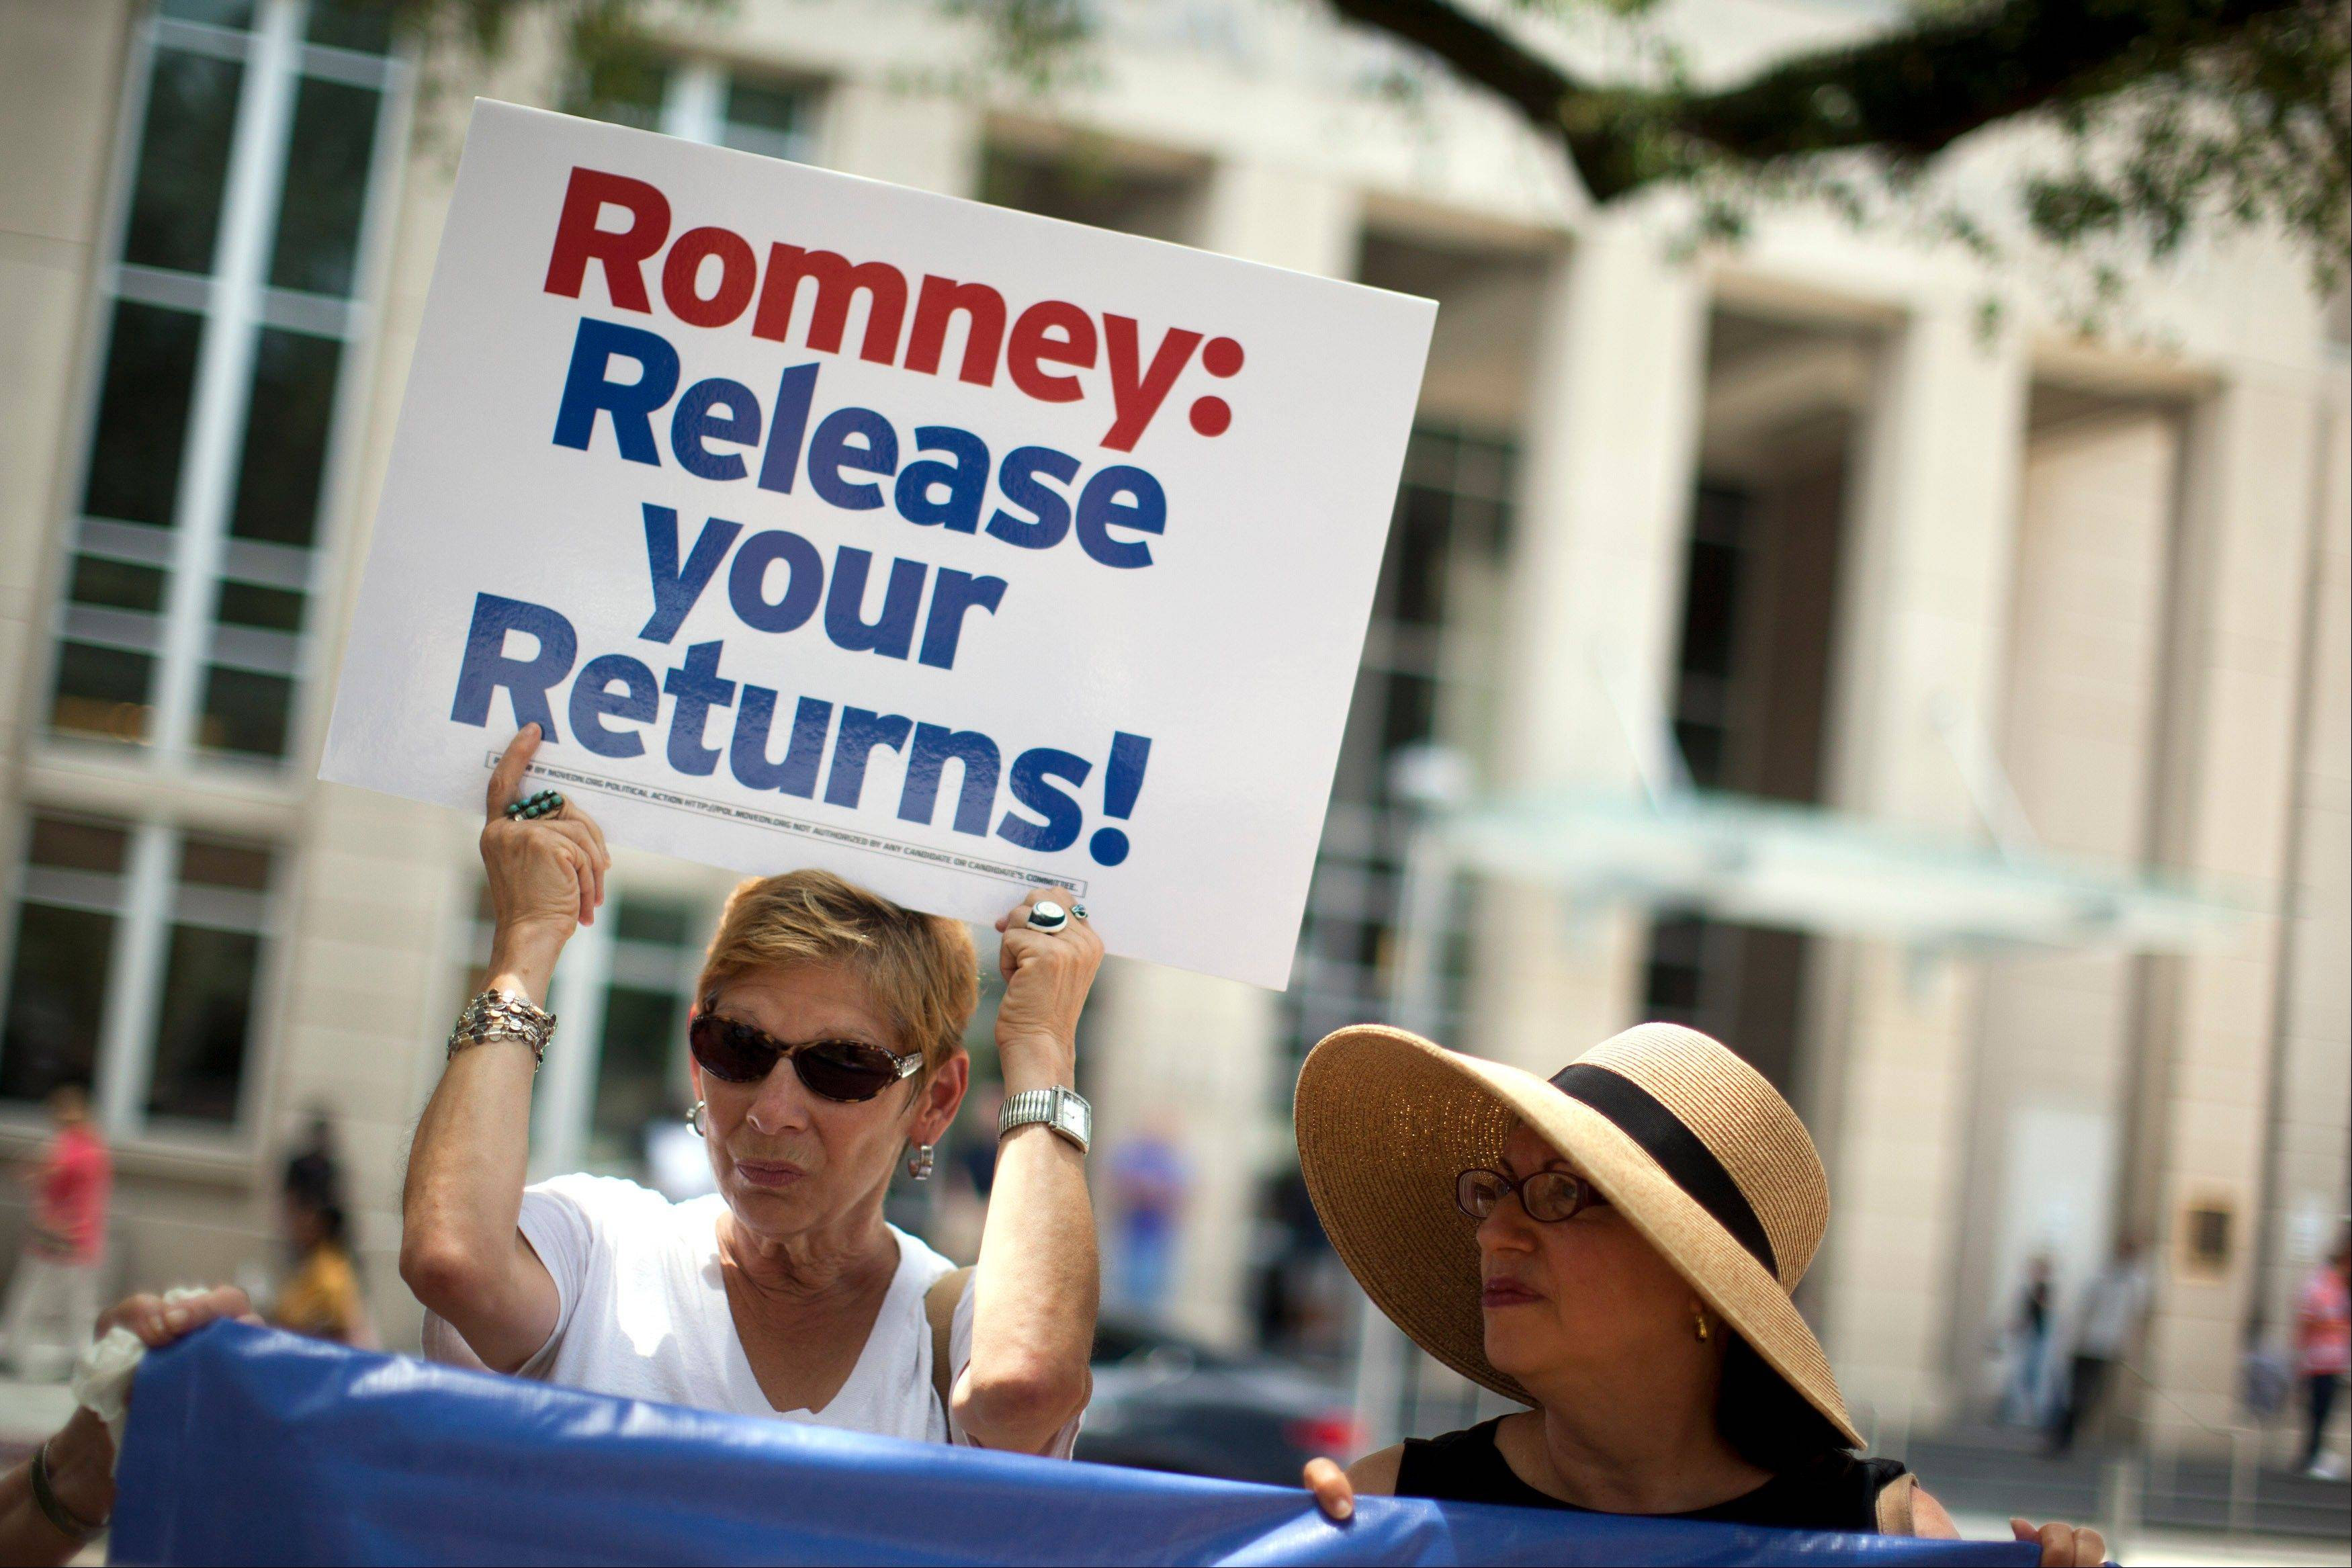 Sharon Simon, of Baton Rouge, La., left, and Ellen Bander, of Baton Rogue, La., protest outside a fundraiser for Republican presidential candidate, former Massachusetts Gov. Mitt Romney on Monday in Baton Rouge, La.